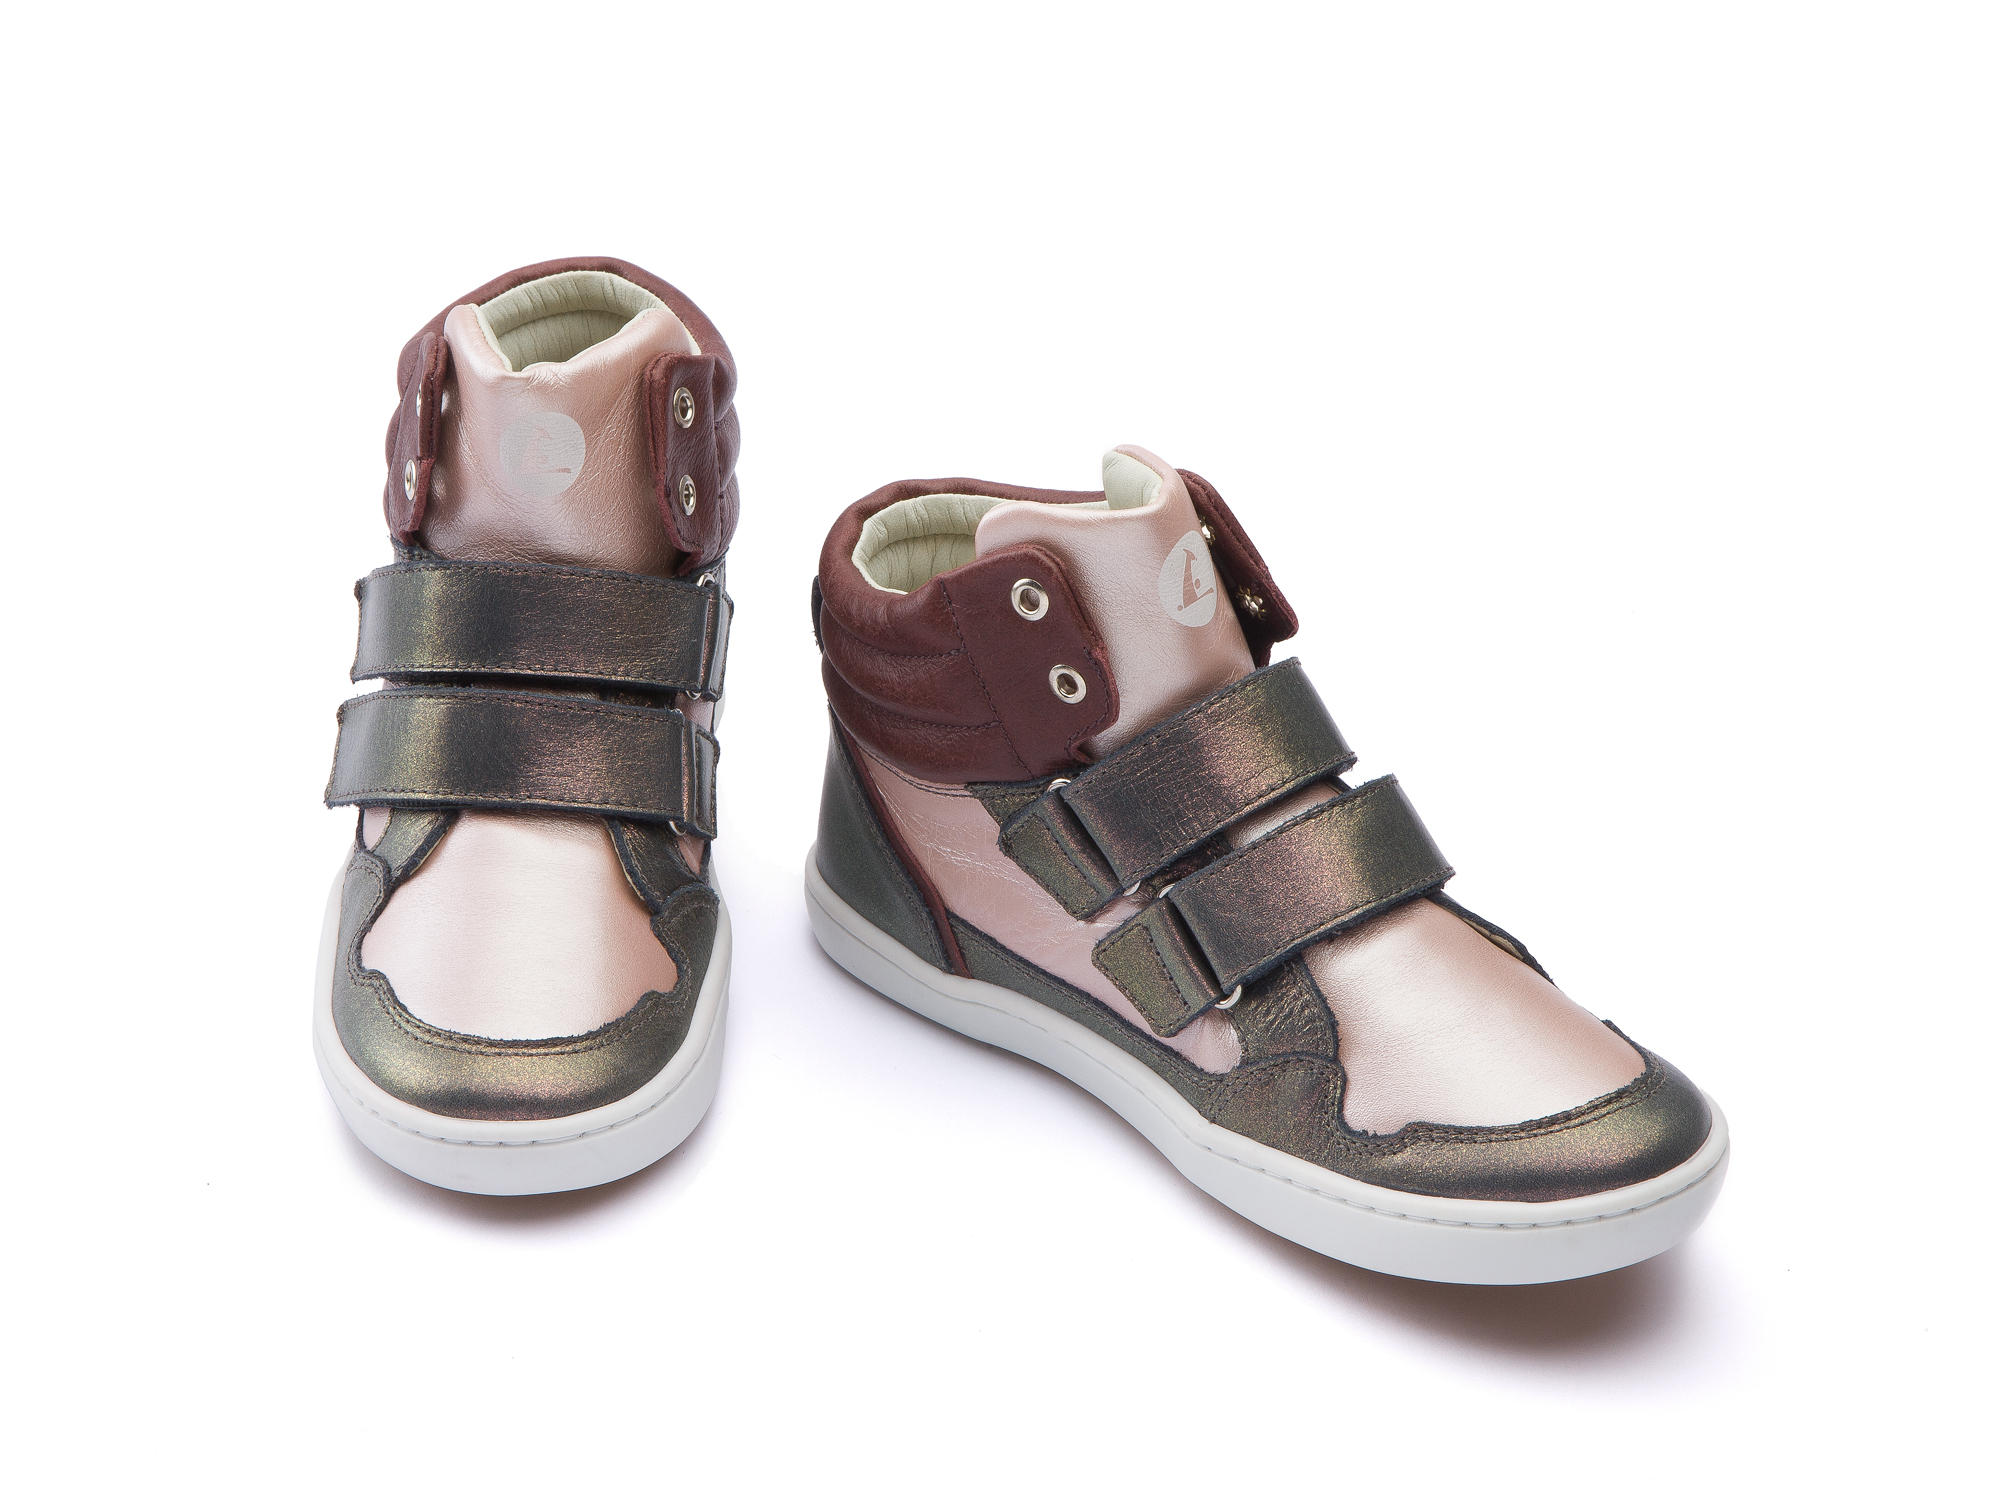 Bota Edge Aurora Dream/ Pink Dream Junior 4 à 8 anos - 1